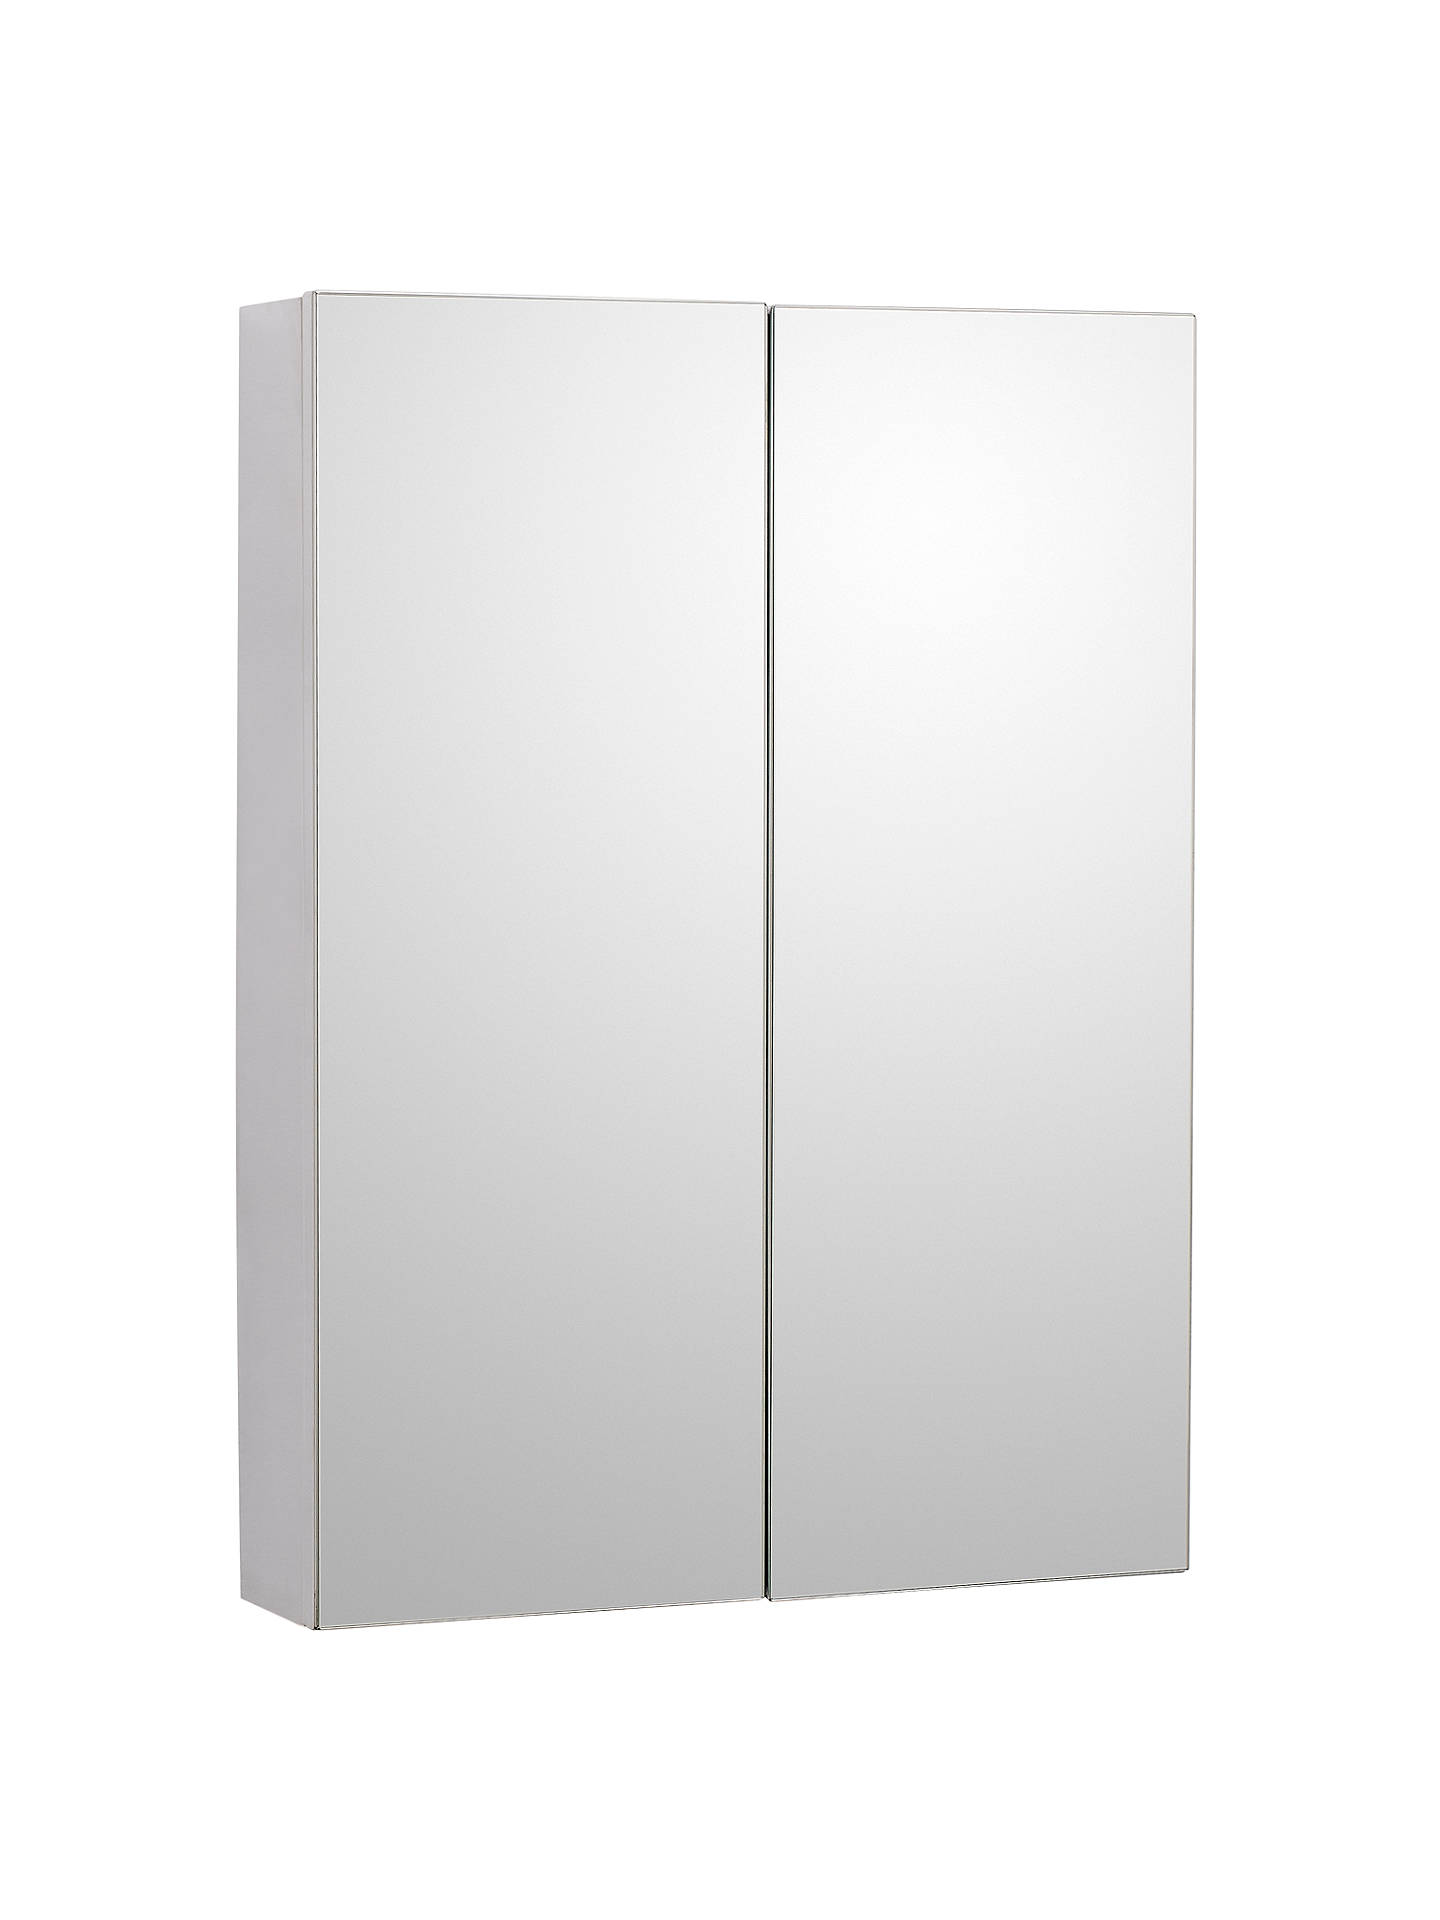 John Lewis Double Mirrored Bathroom Cabinet, Stainless Steel at John ...